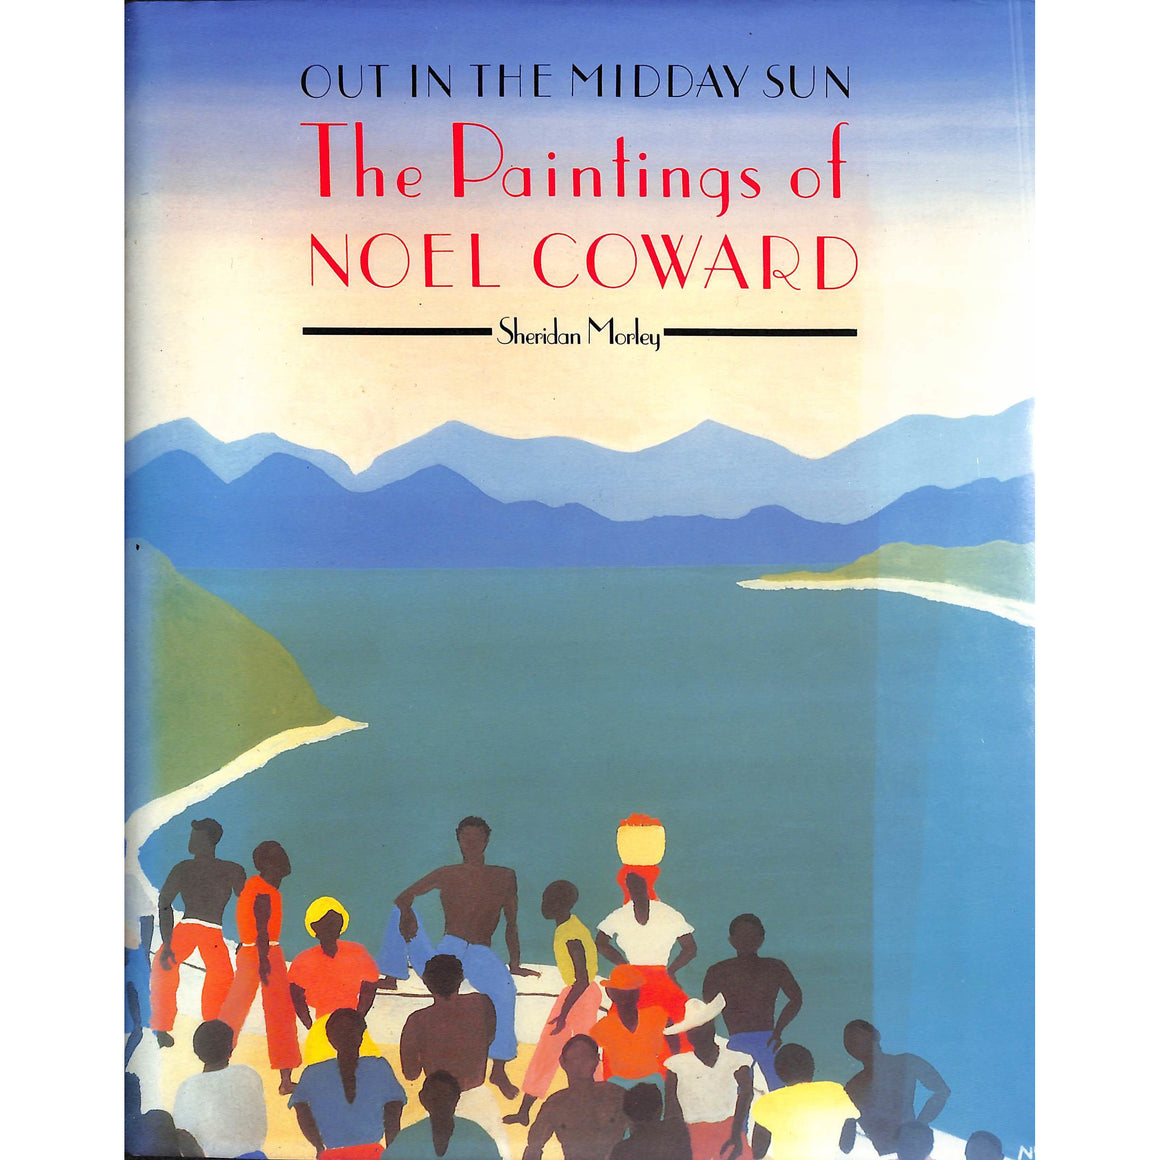 Out In The Midday Sun The Paintings of Noel Coward